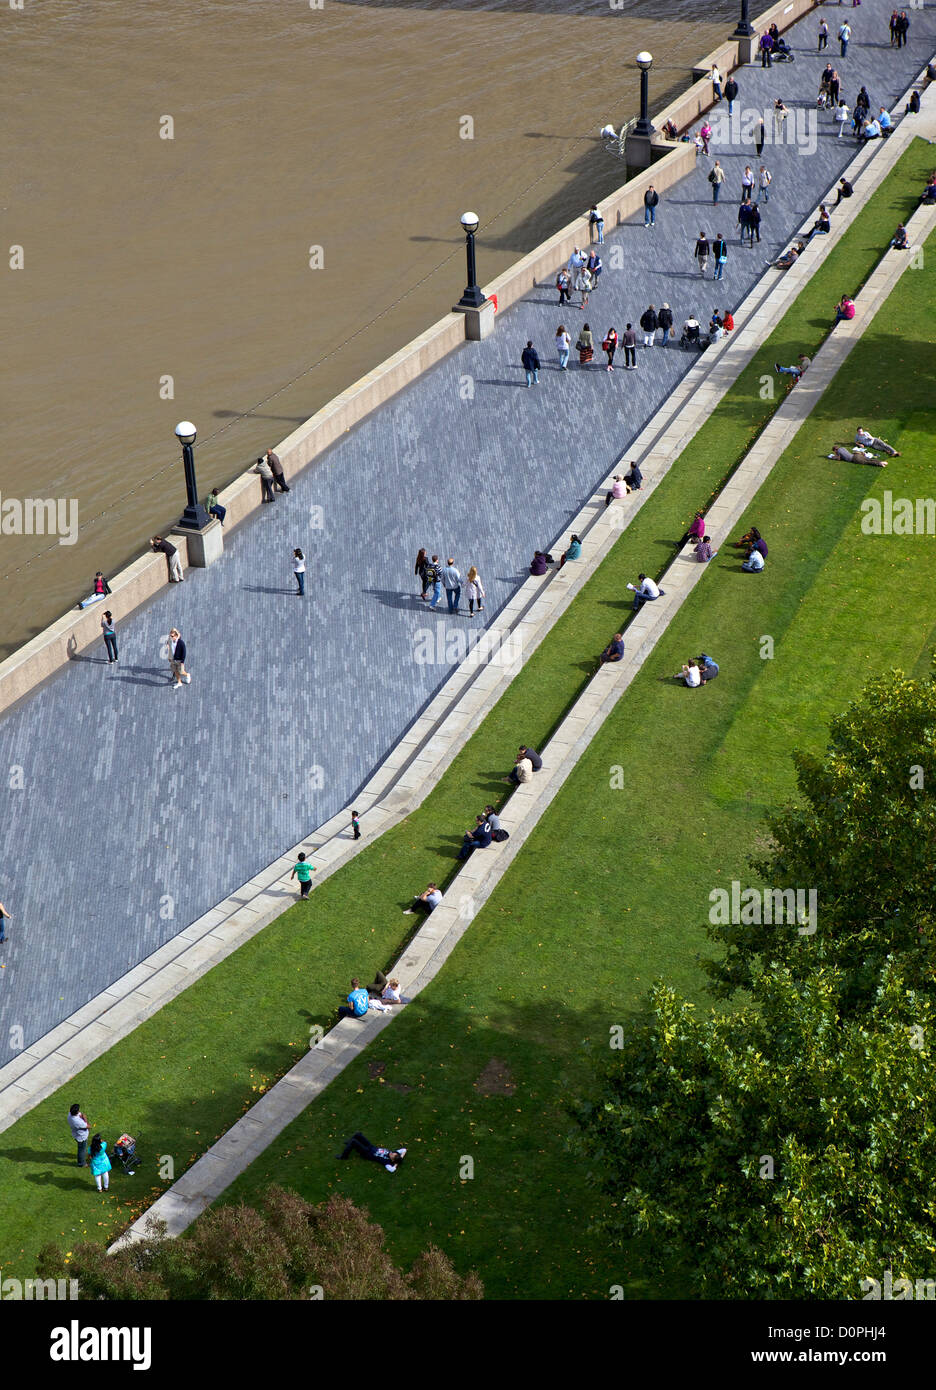 South bank of the River Thames, London, UK - Stock Image